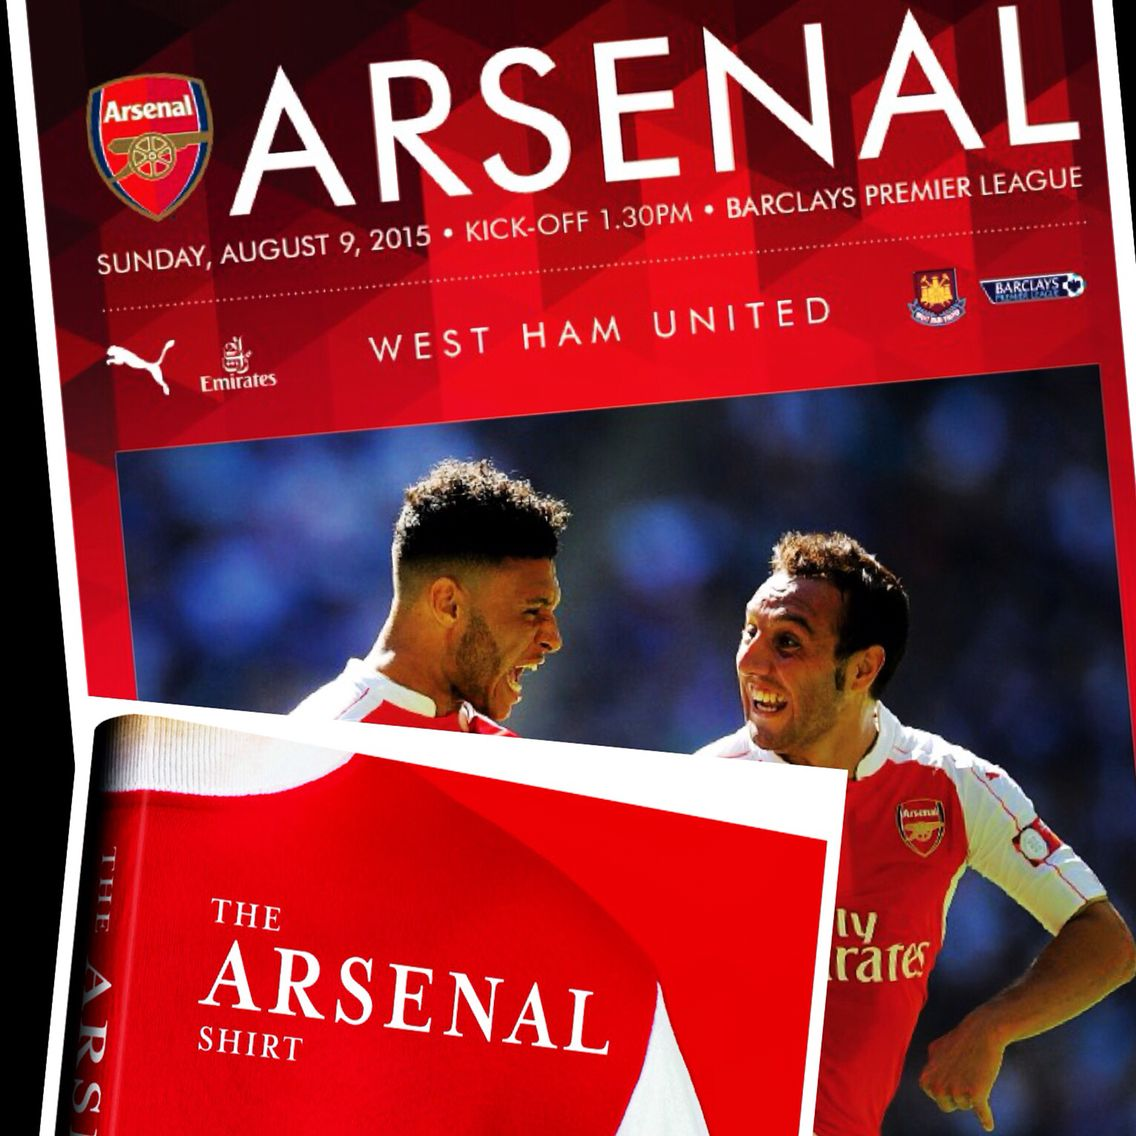 For the 15/16 season The Arsenal Shirt will feature in the